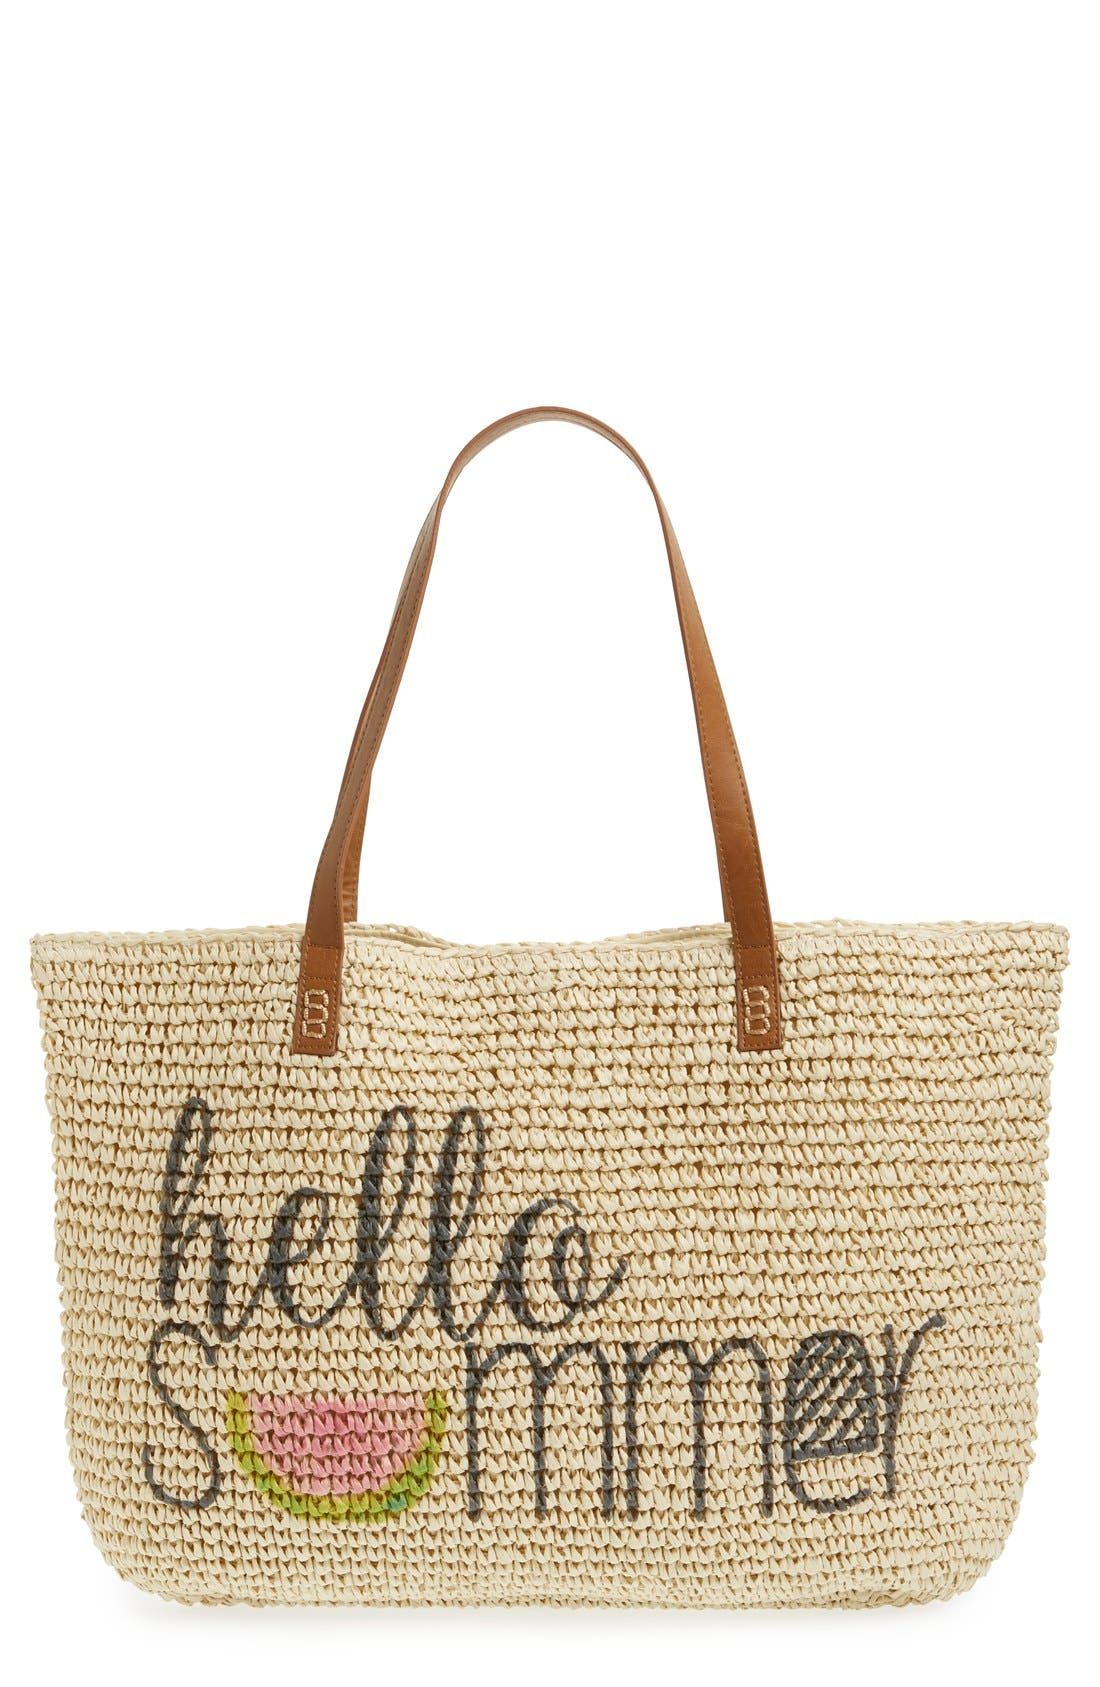 Alternate Image 1 Selected - Straw Studios 'Conversation' Straw Tote